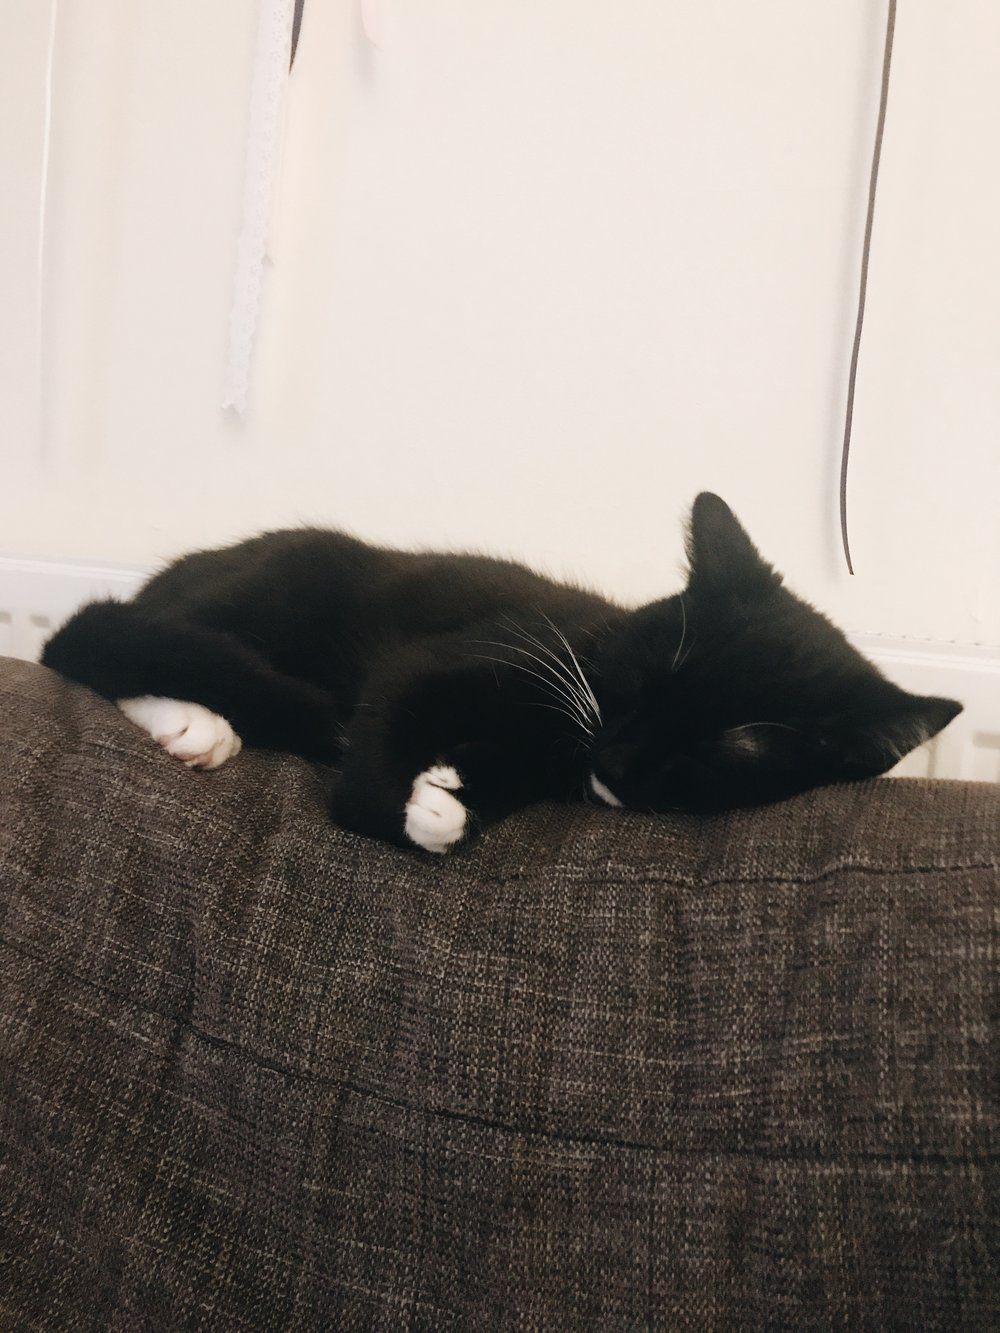 All About Jake - Fostering Kittens for Furbabies